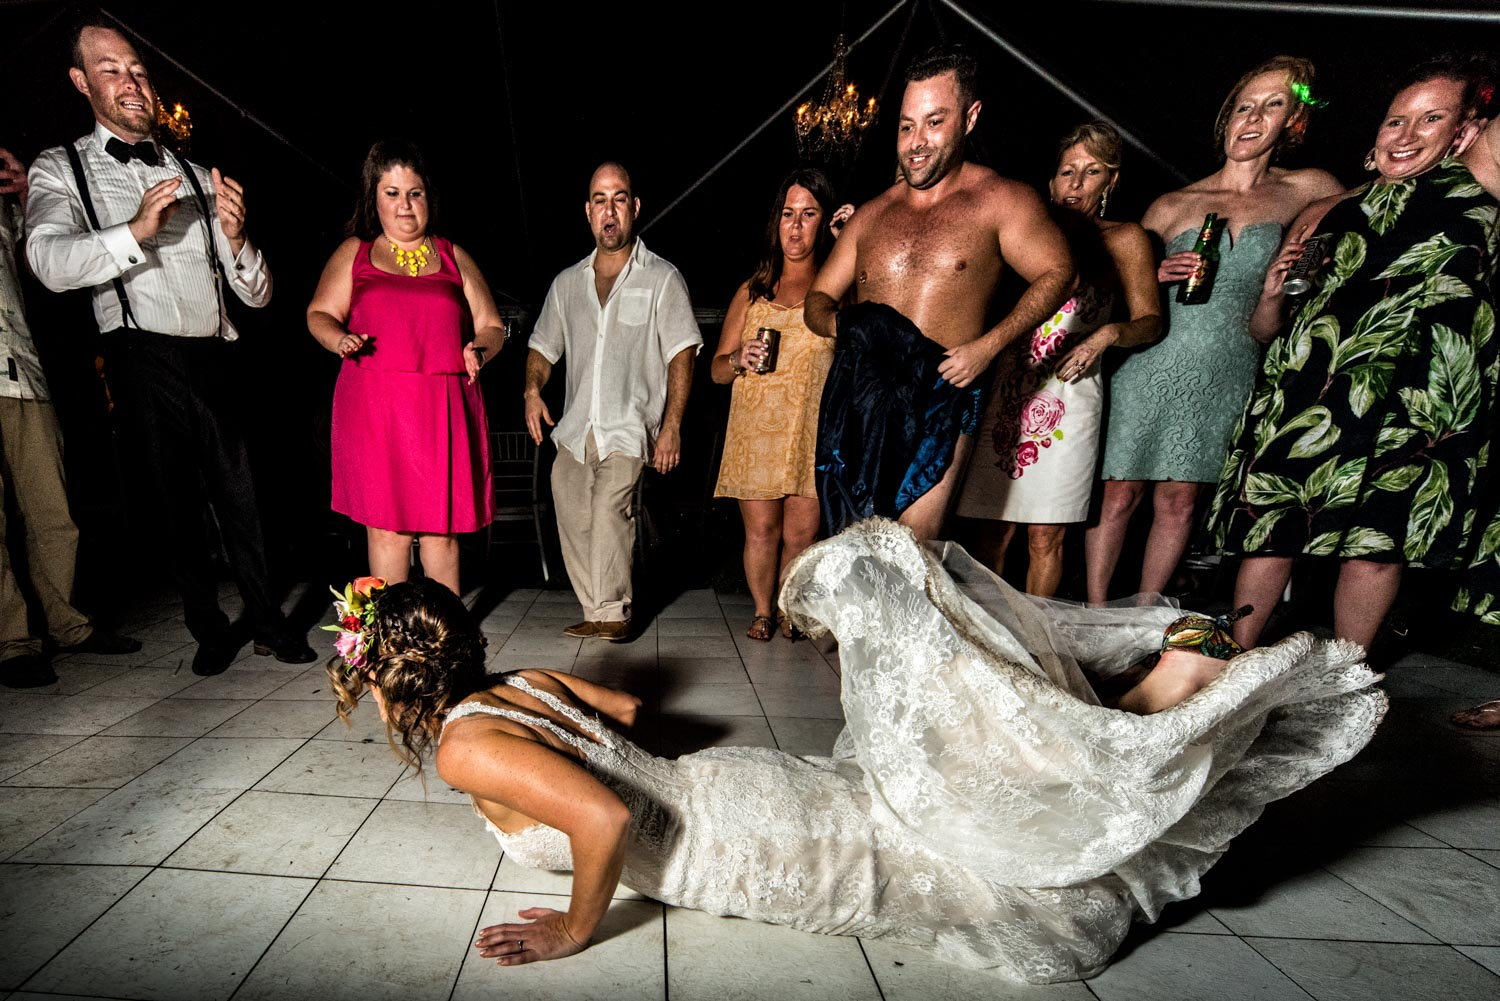 Bride wearing white wedding dress doing a break dance move on the dirty dance floor.